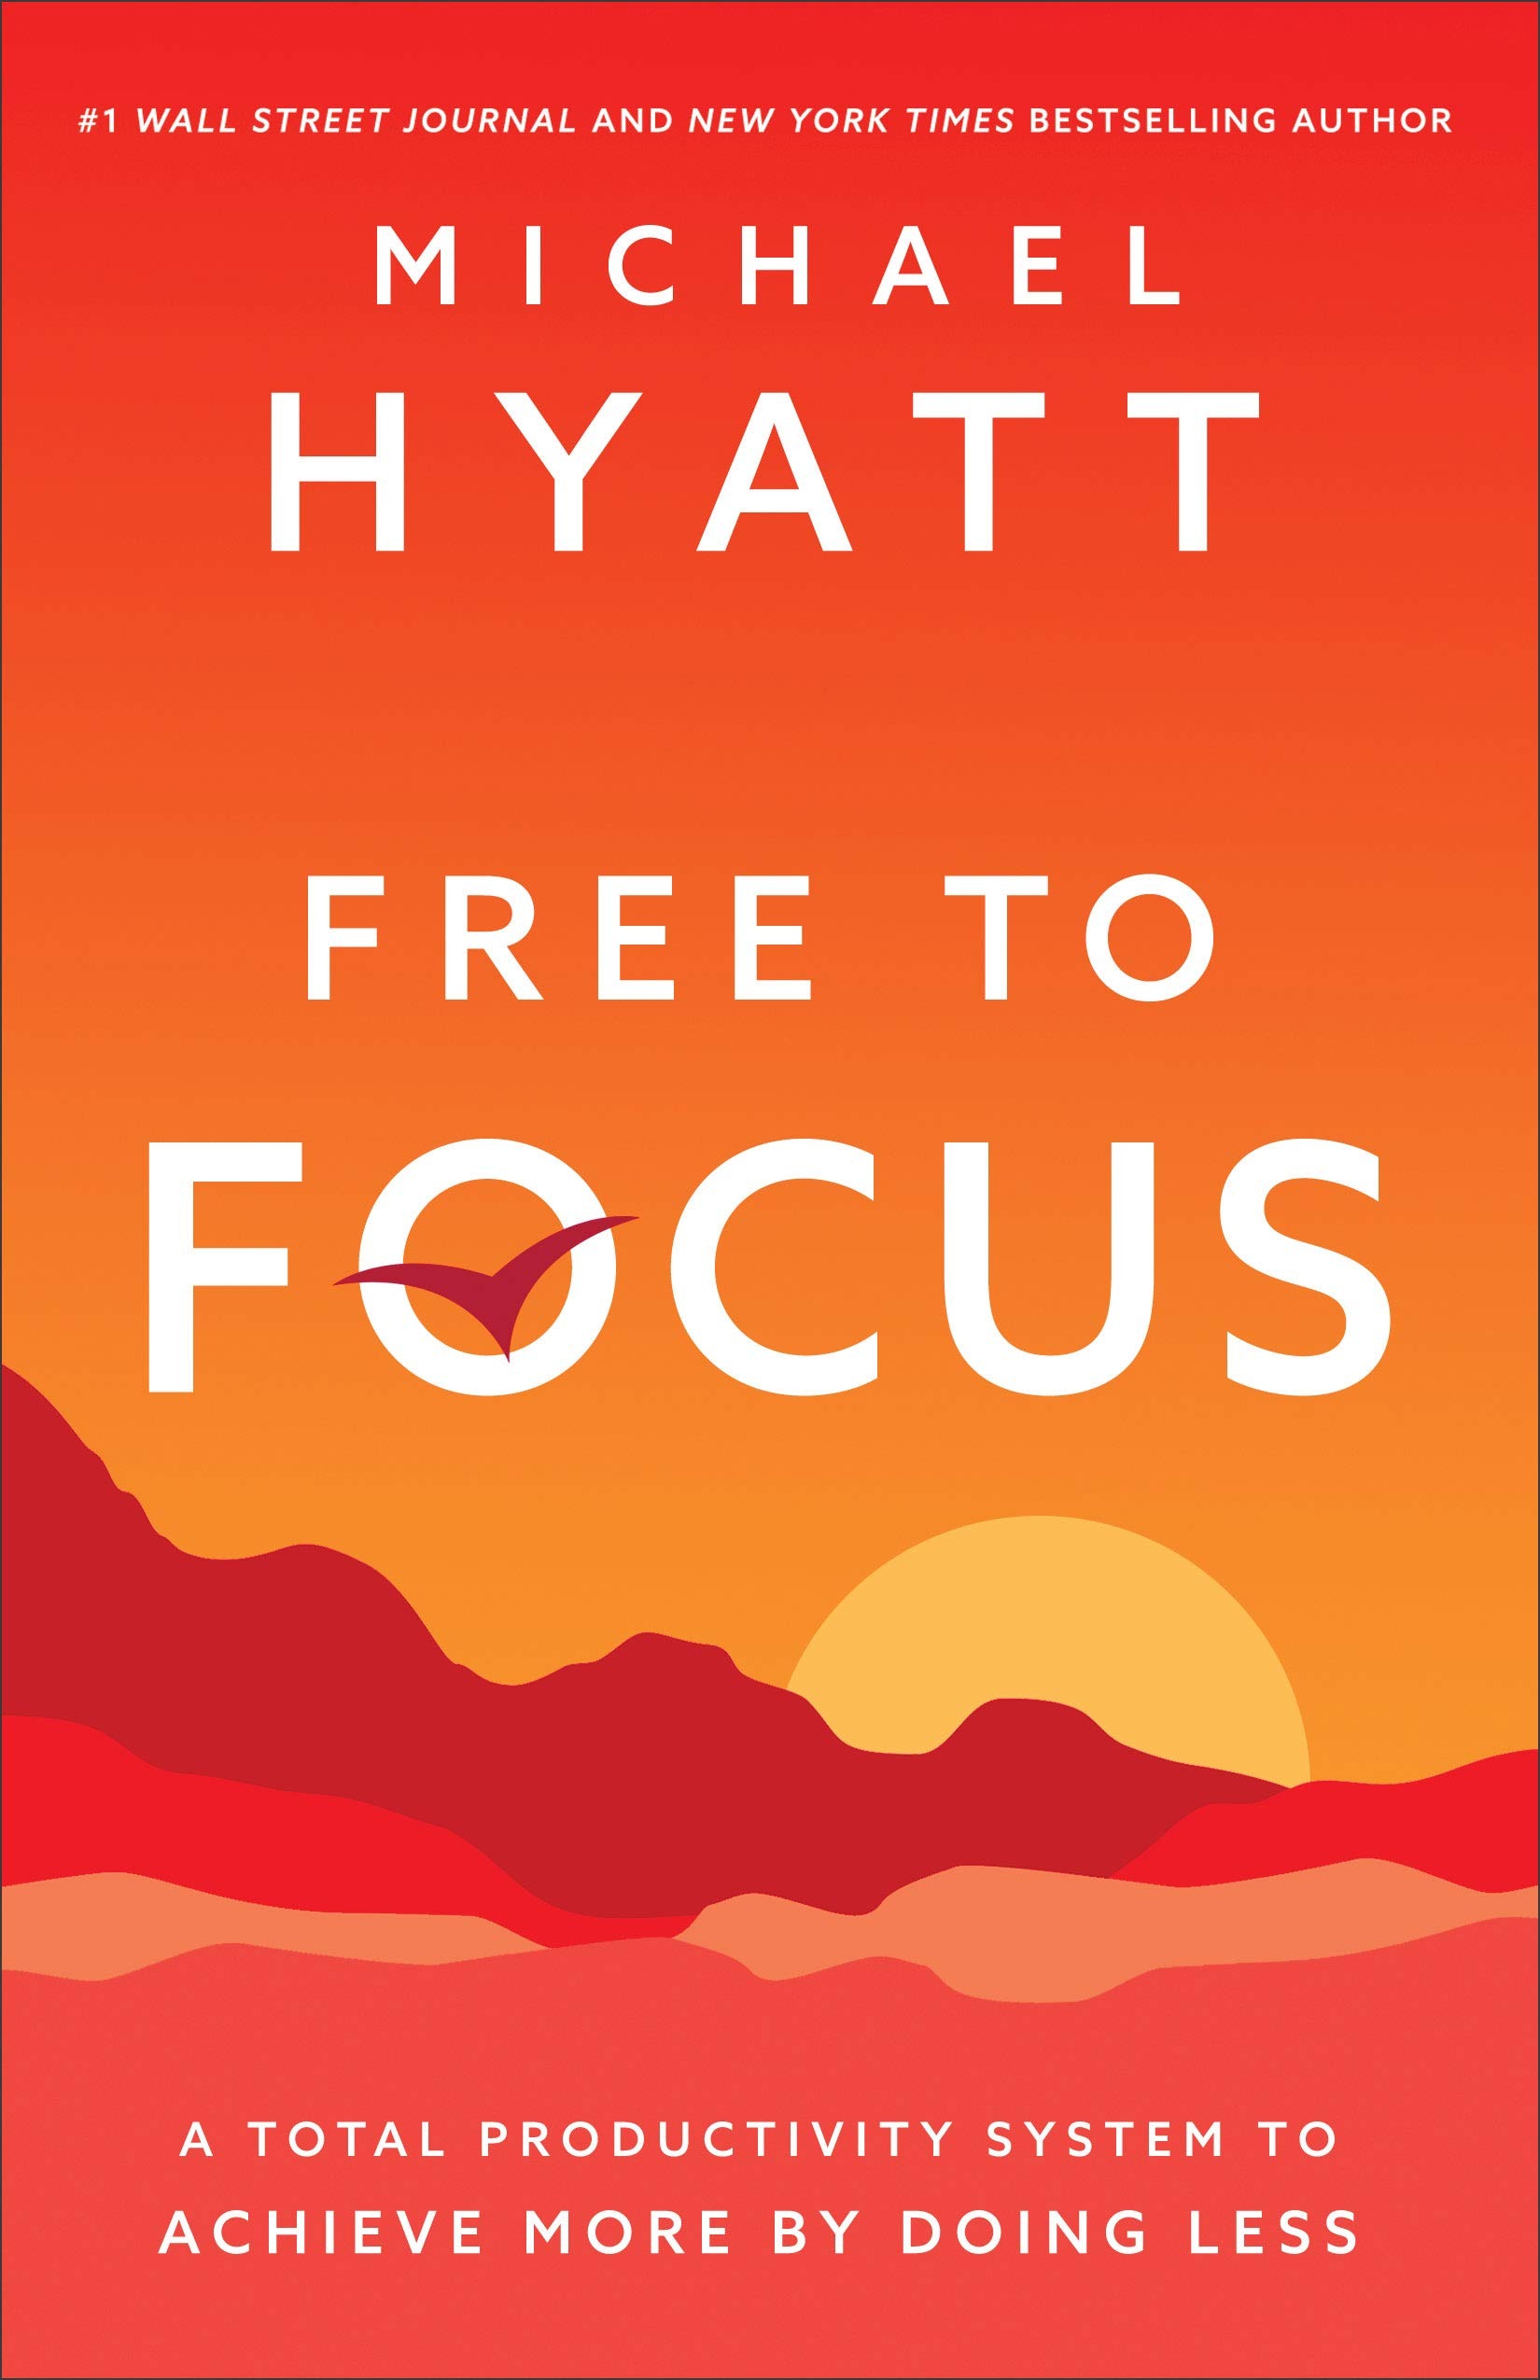 Book Review: 'Free to Focus' by Michael Hyatt